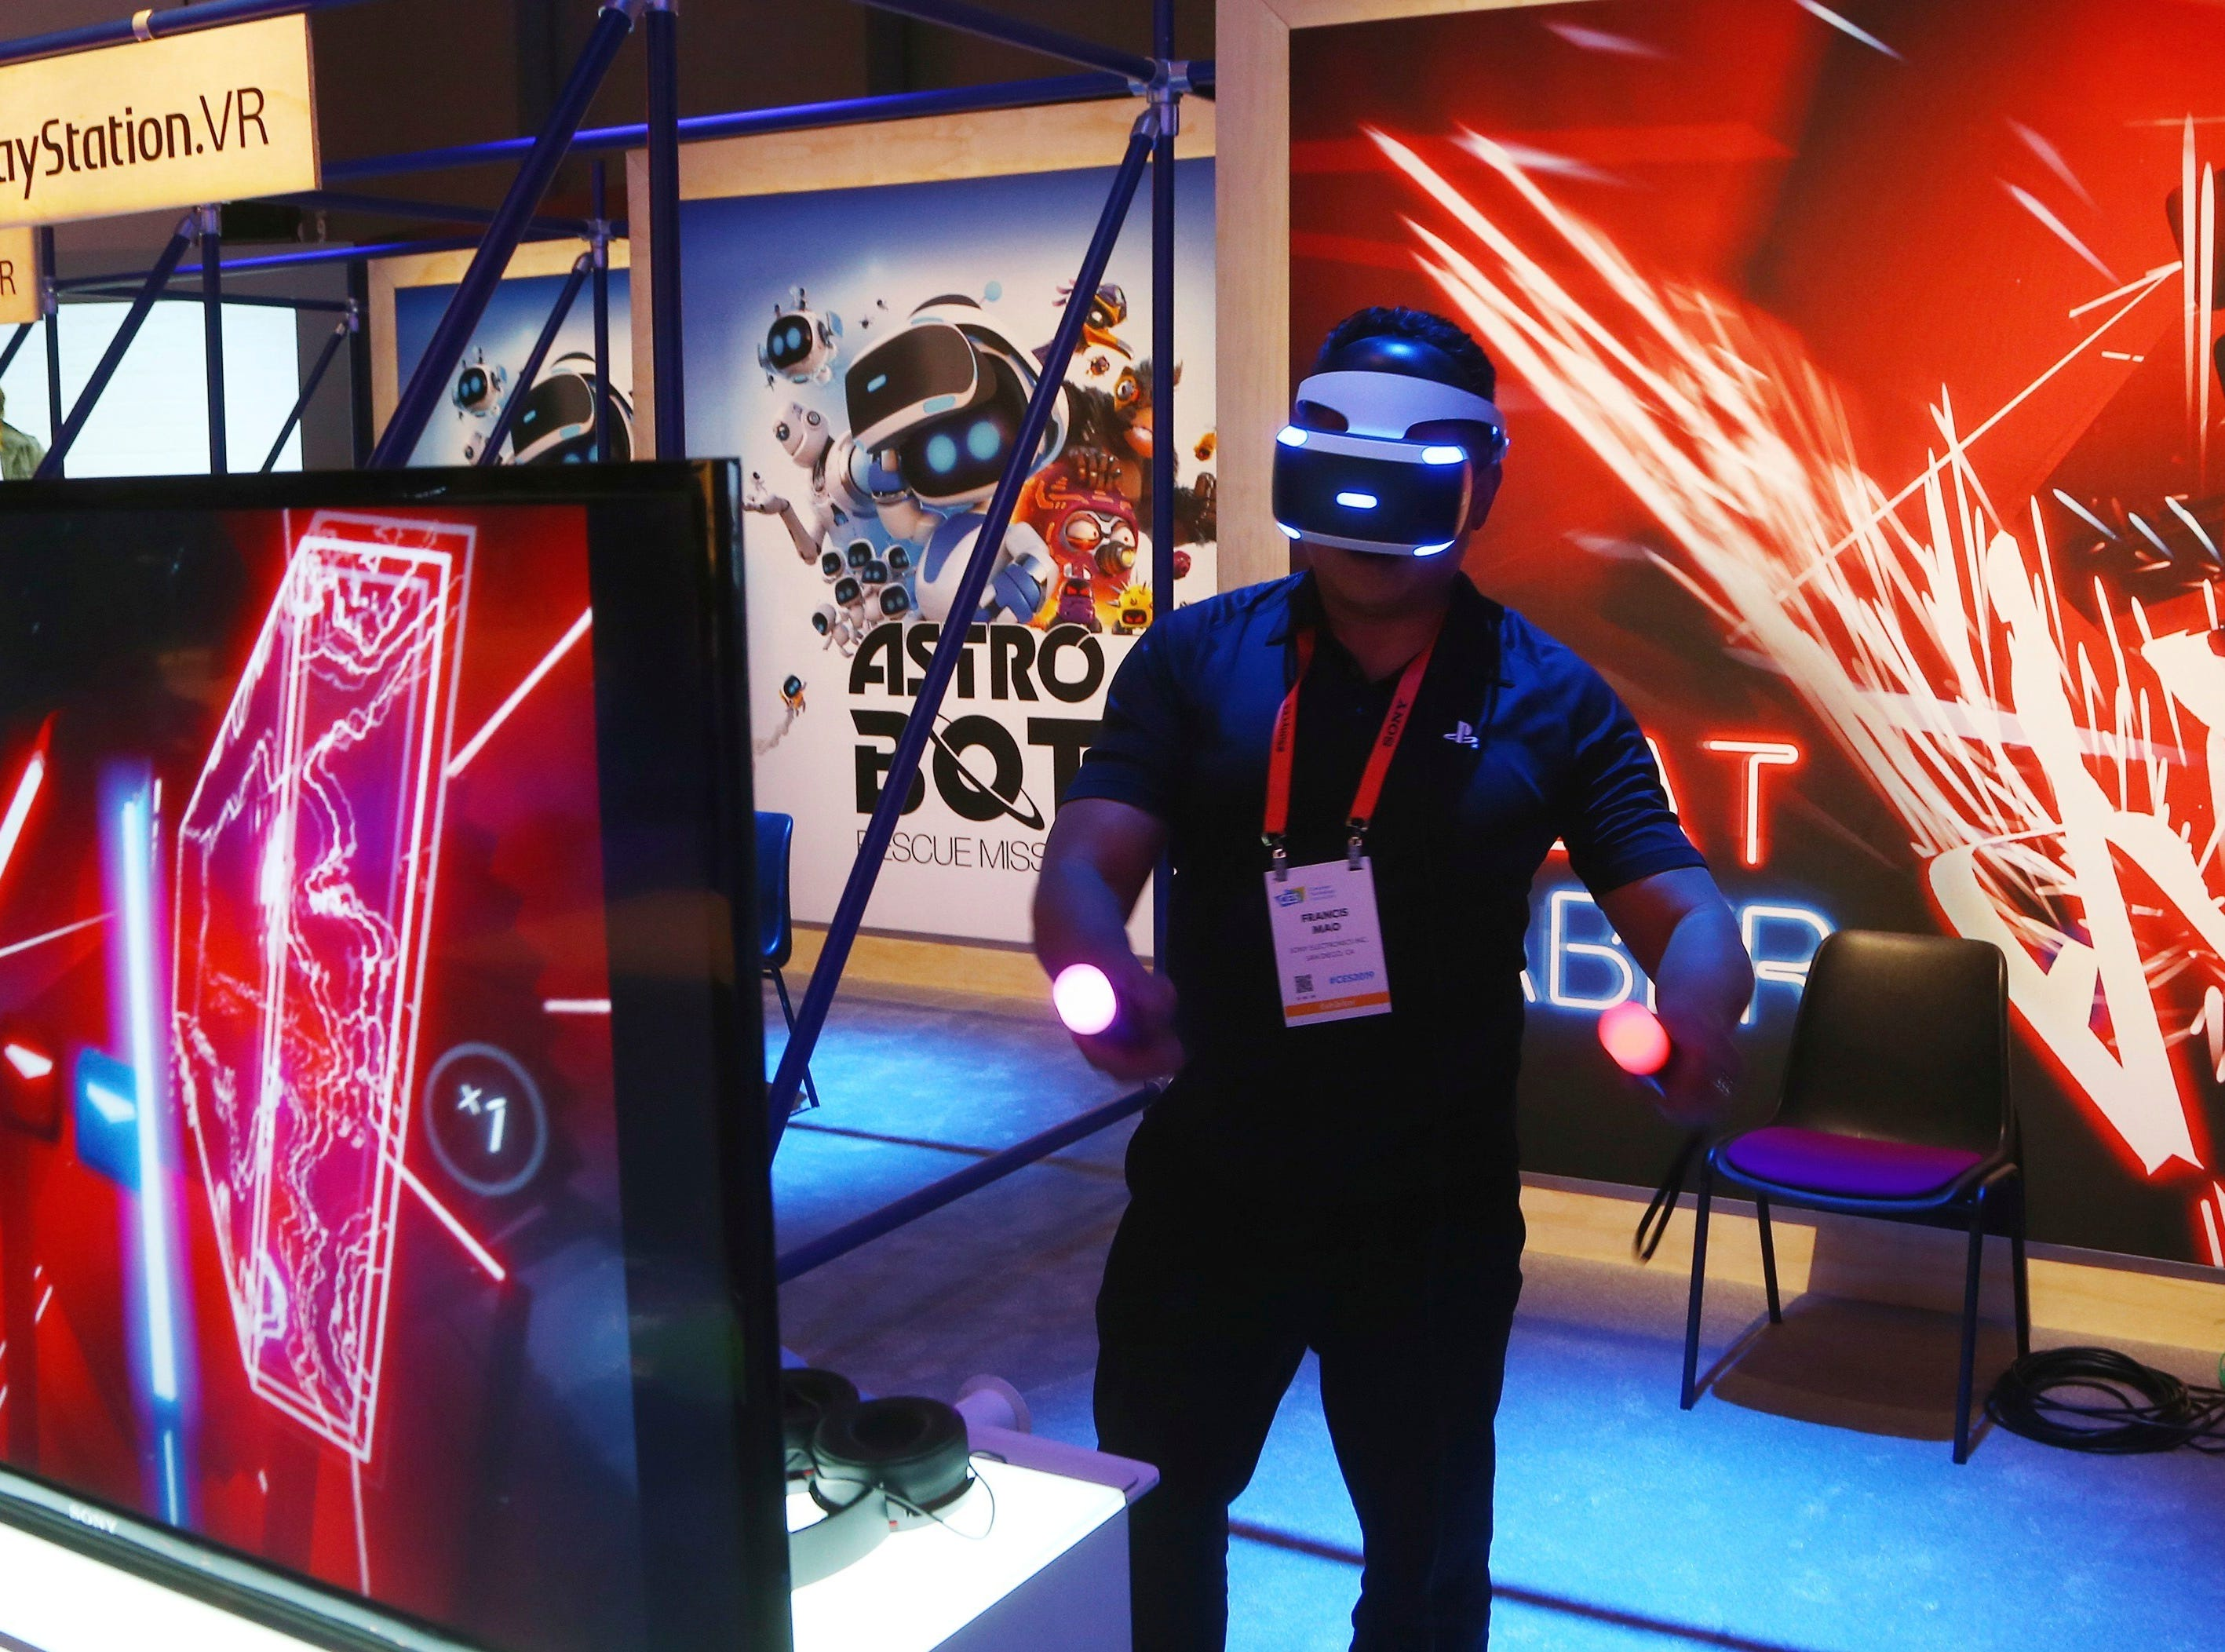 A CES attendee plays the PlayStation VR Beat Saber game inside the Sony display area at CES International on Monday, Jan. 7, 2019, in Las Vegas.